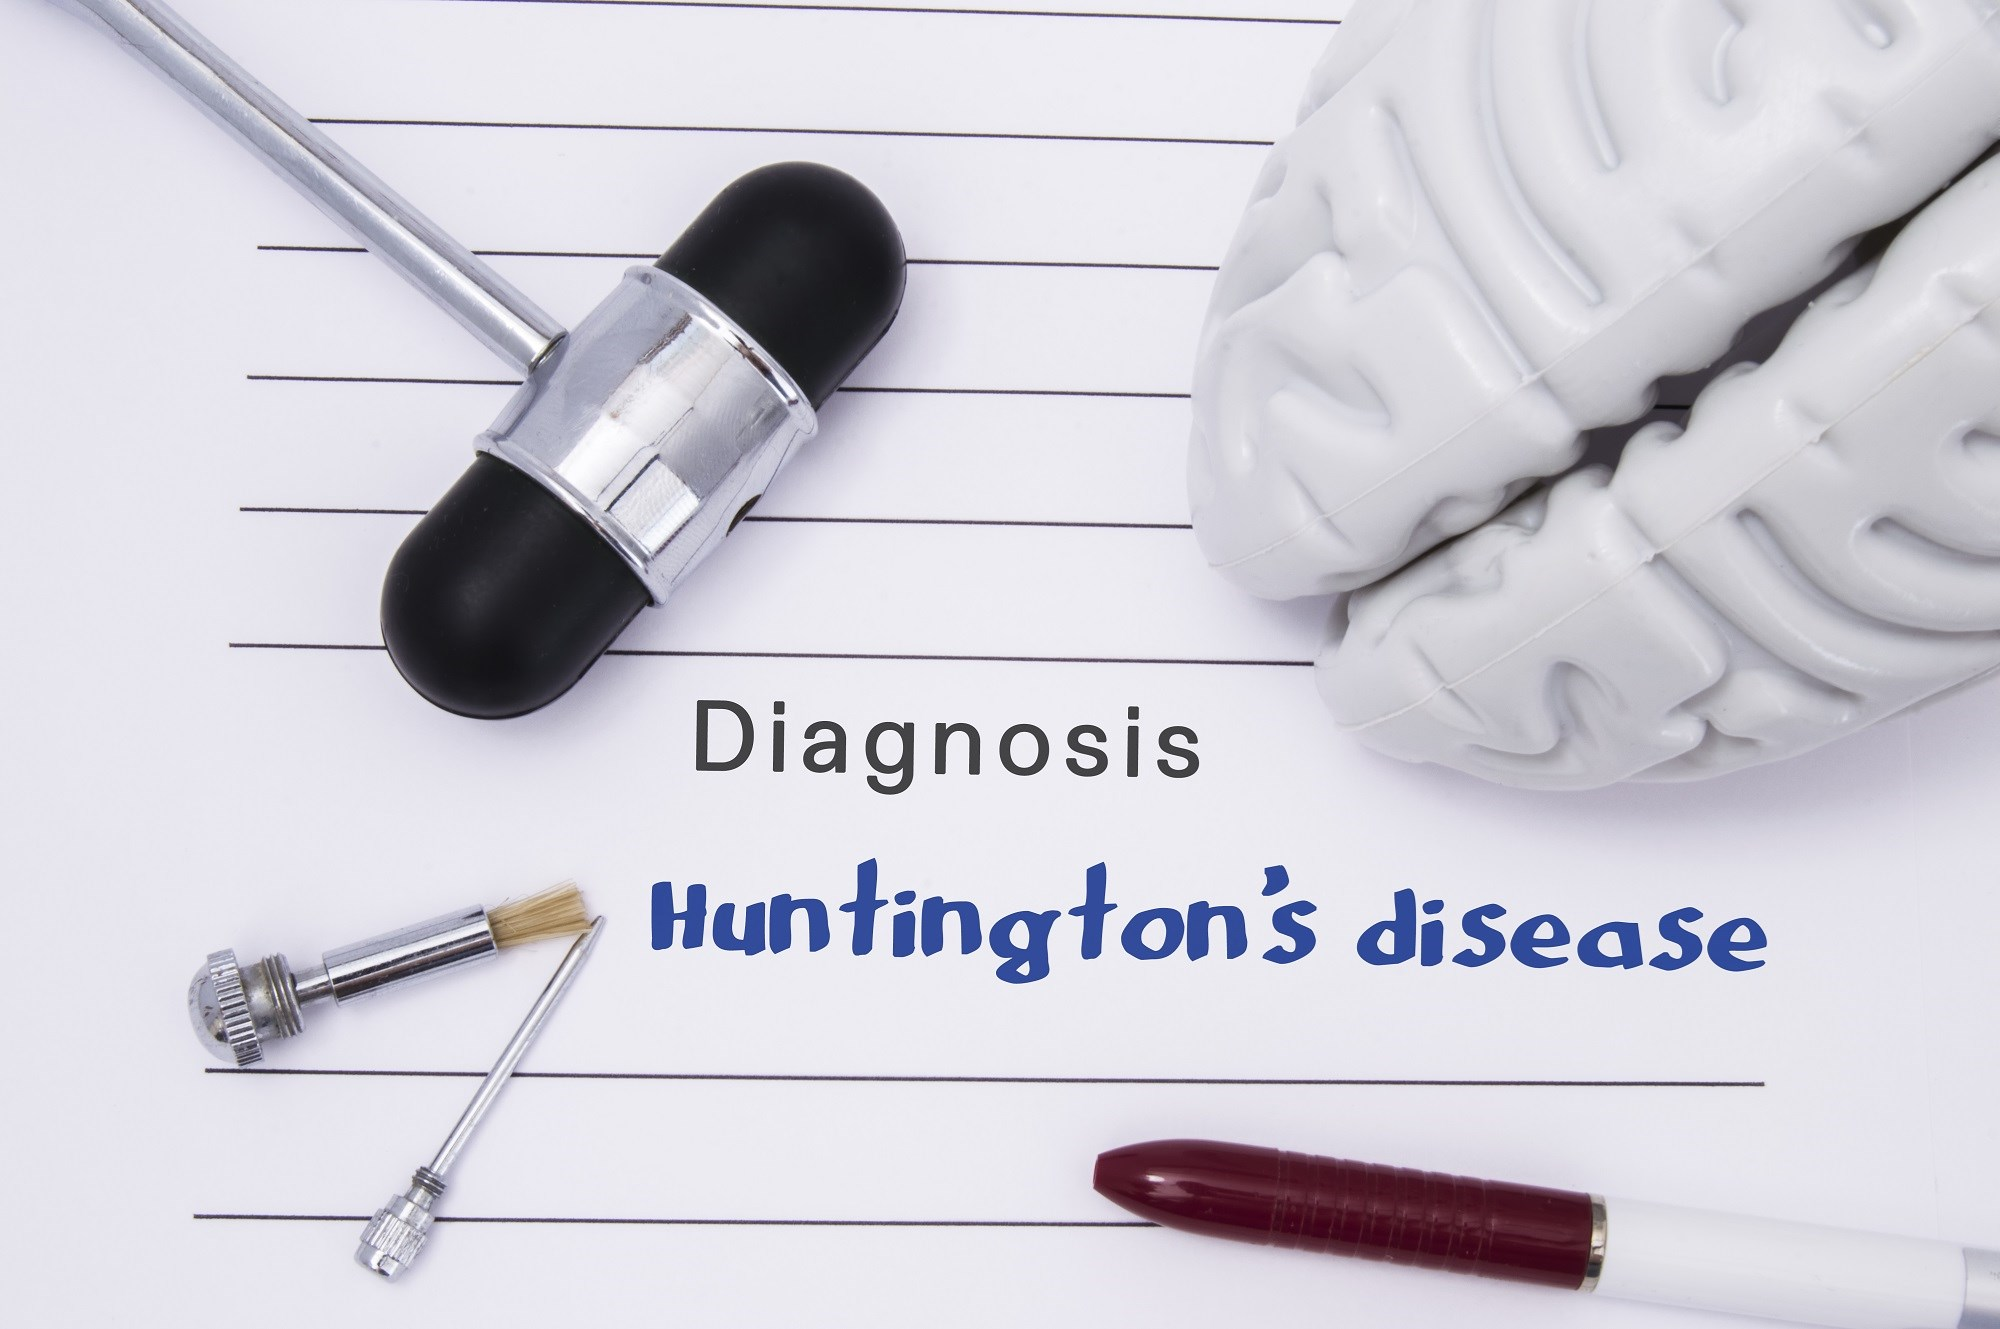 Two physicians administered both UHDRS and UHDRS-FAP scales twice on the same day to patients with Huntington disease.